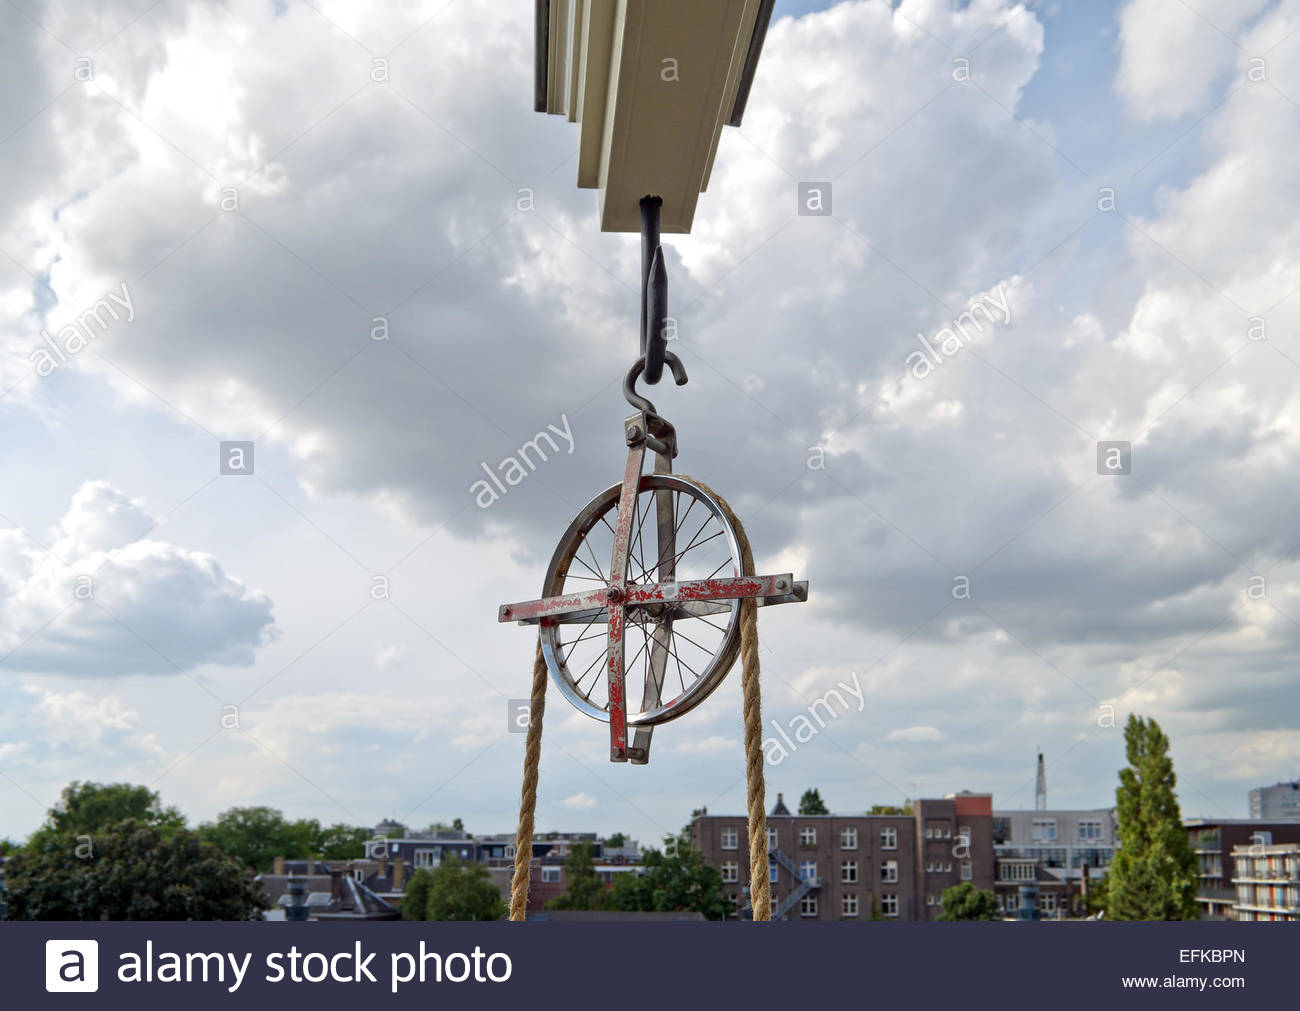 Lifting beam and wheel for moving furniture into or out of a tall house in Amsterdam. - Stock Image